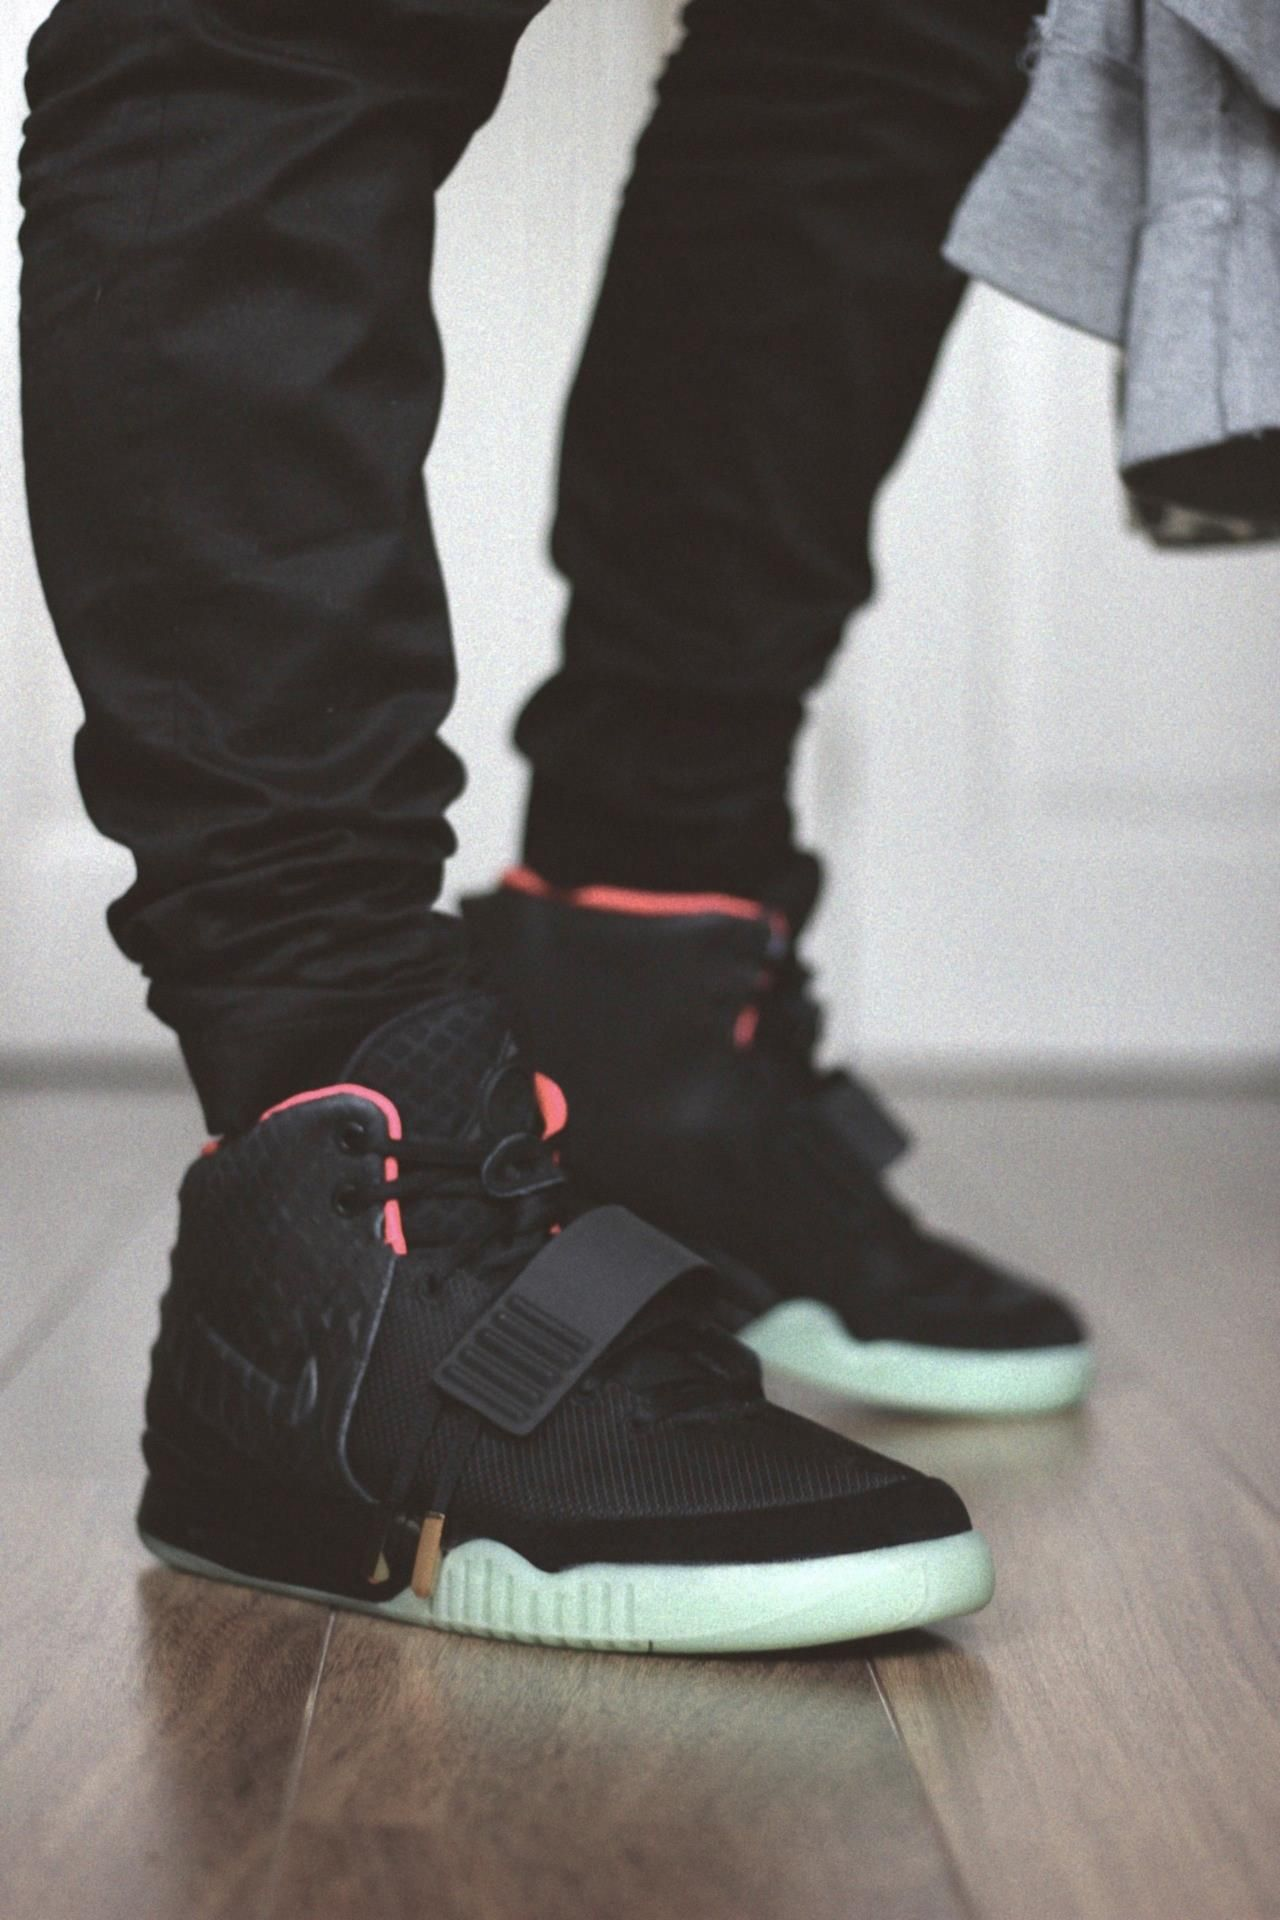 Dinkarville Excursión músico  Nike Yeezy 2's | Nike shoes outlet, Sneakers, Air yeezy 2